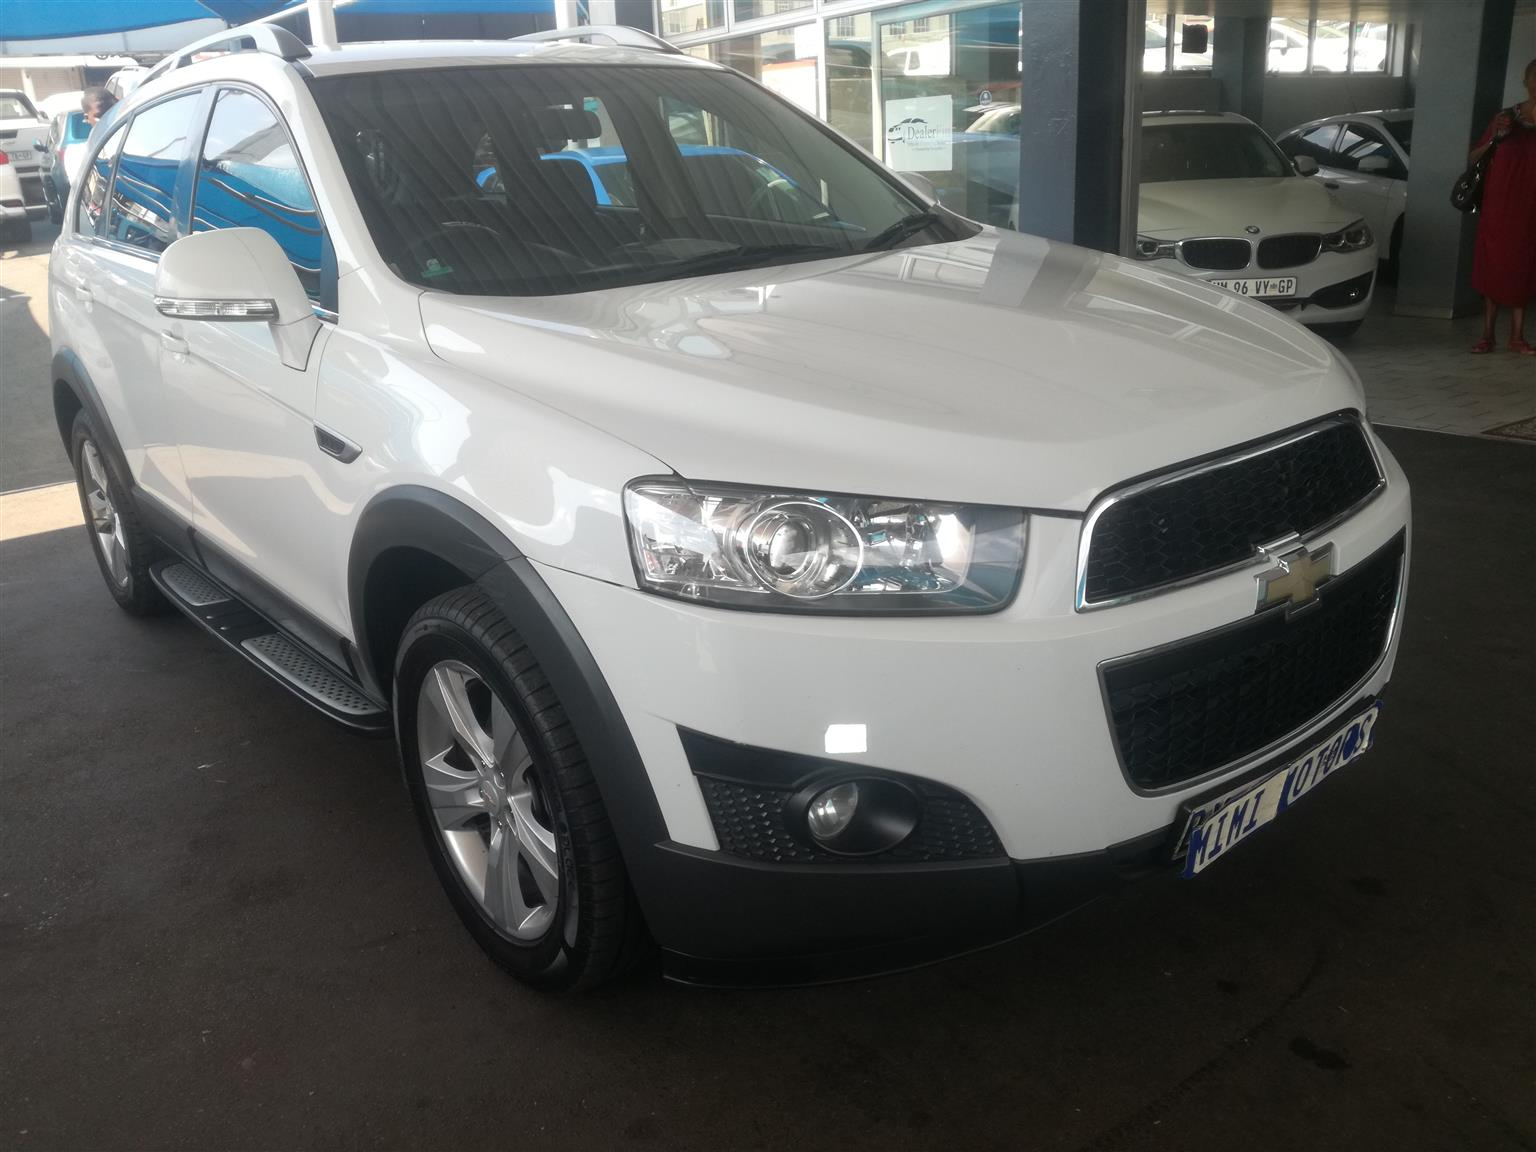 2012 Chevrolet Captiva 2.4 LS